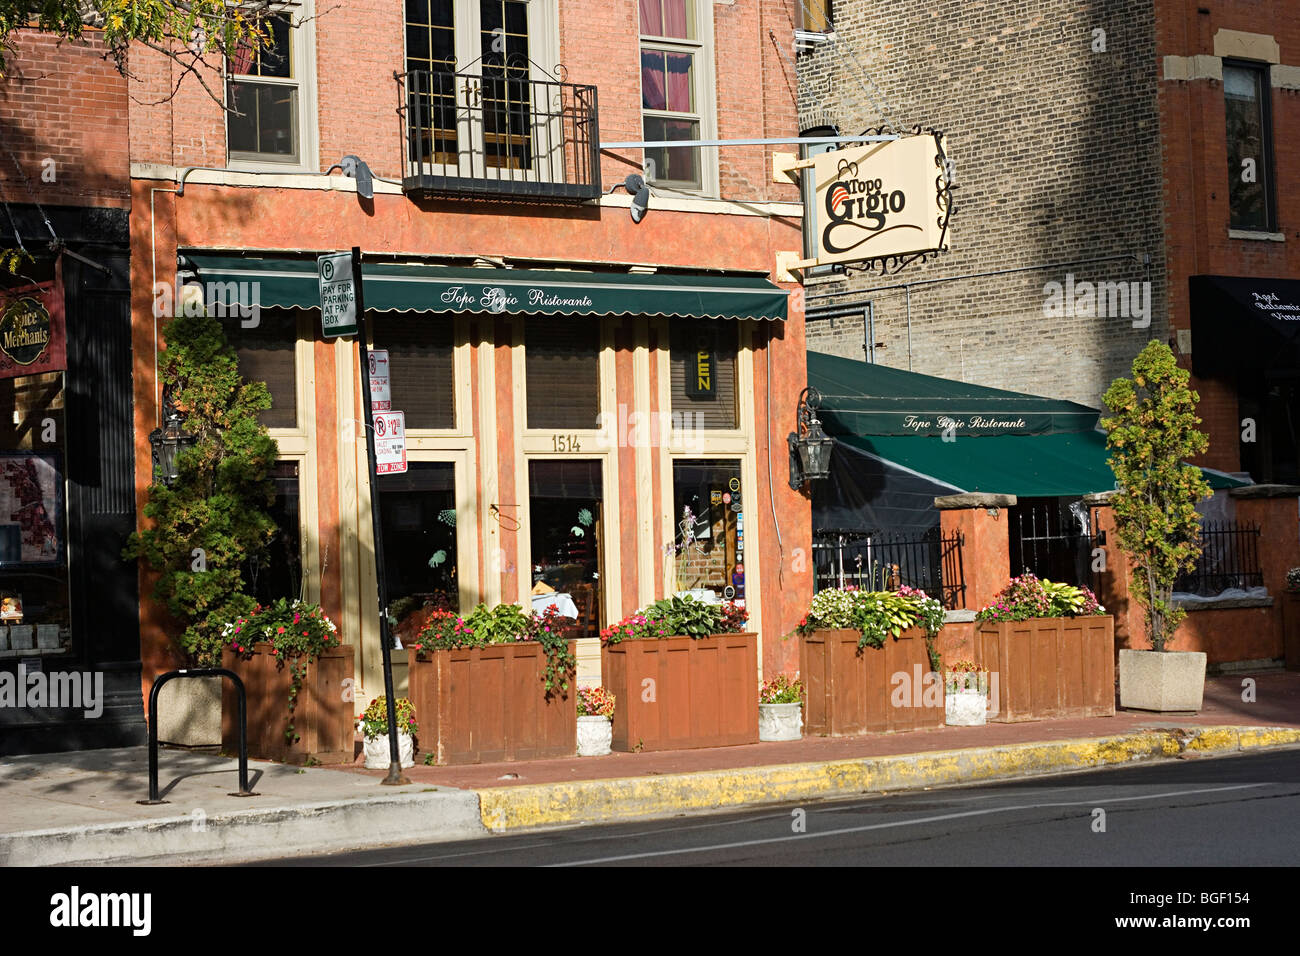 Topo Gigio Ristorante on N. Wells Street in Old Town triangle Chicago - Stock Image